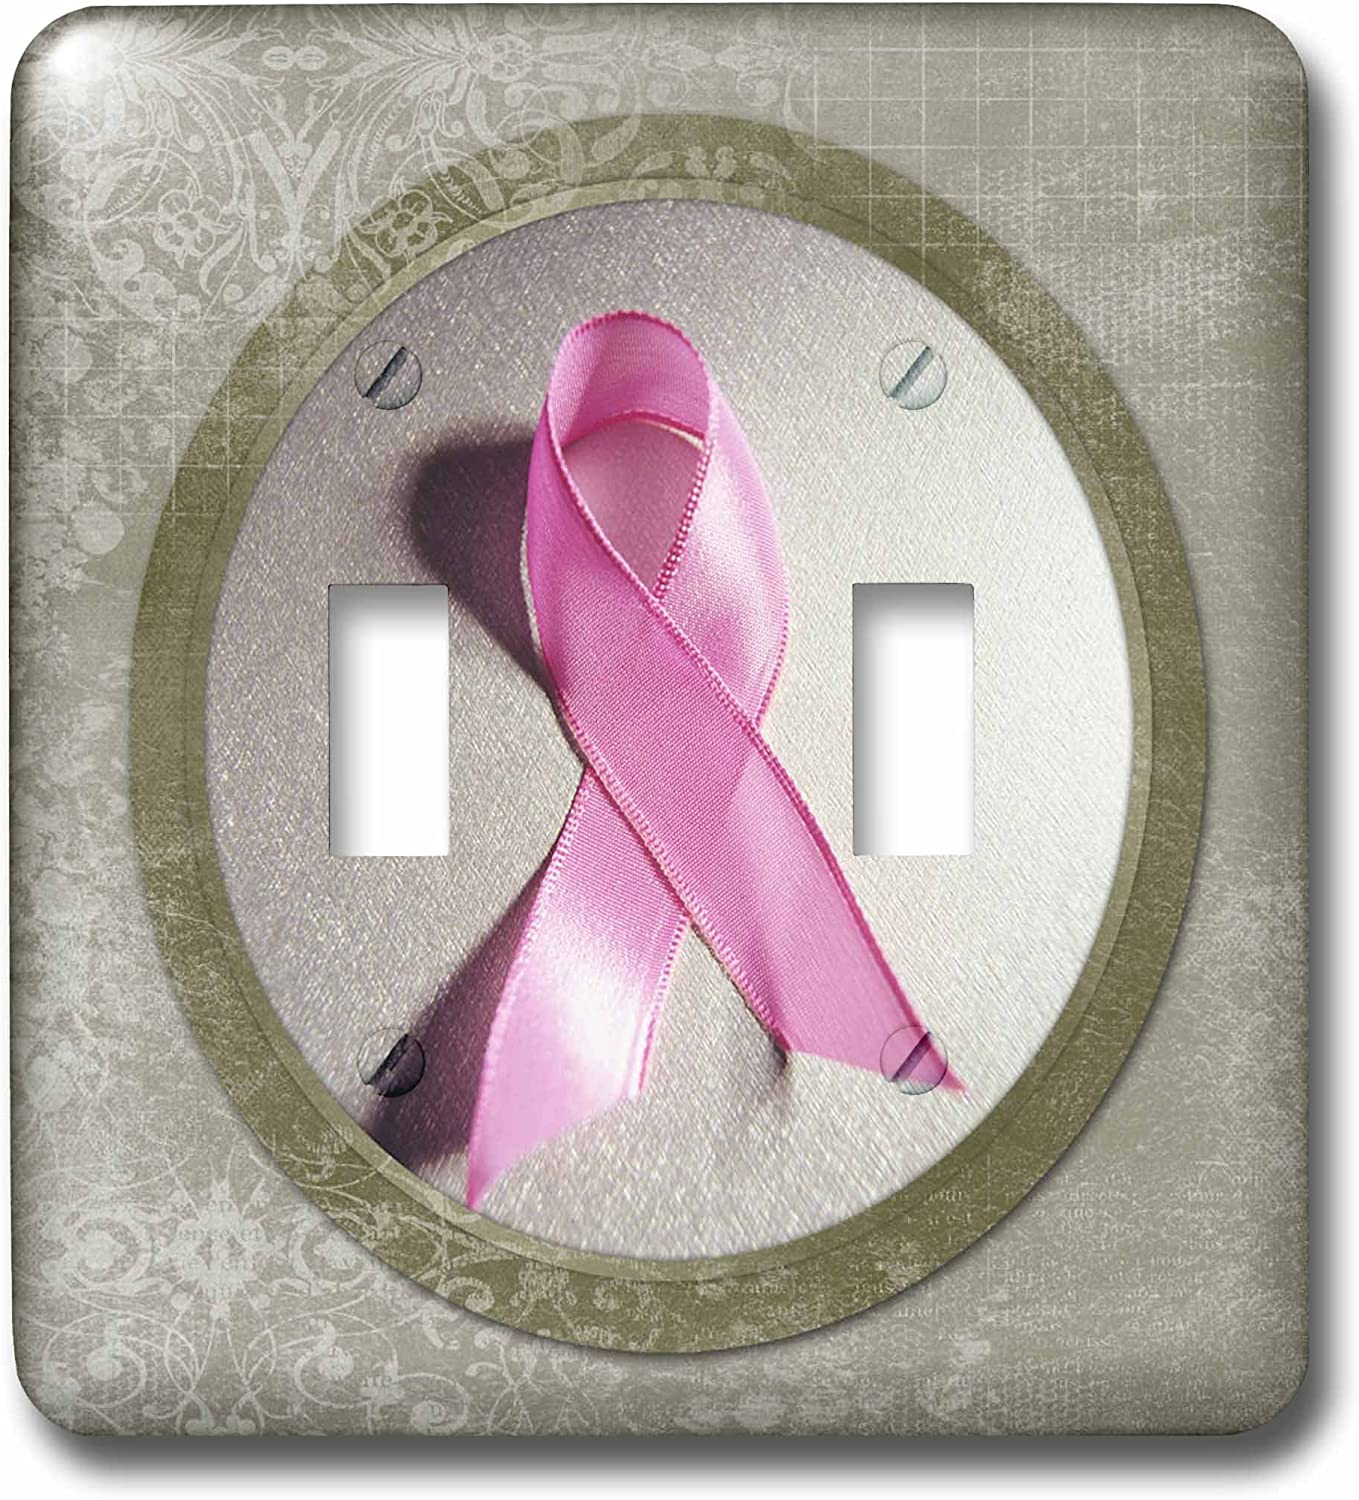 3drose Lsp 99446 2 Breast Cancer Awareness Ribbon Light Switch Cover Wall Plates Amazon Com